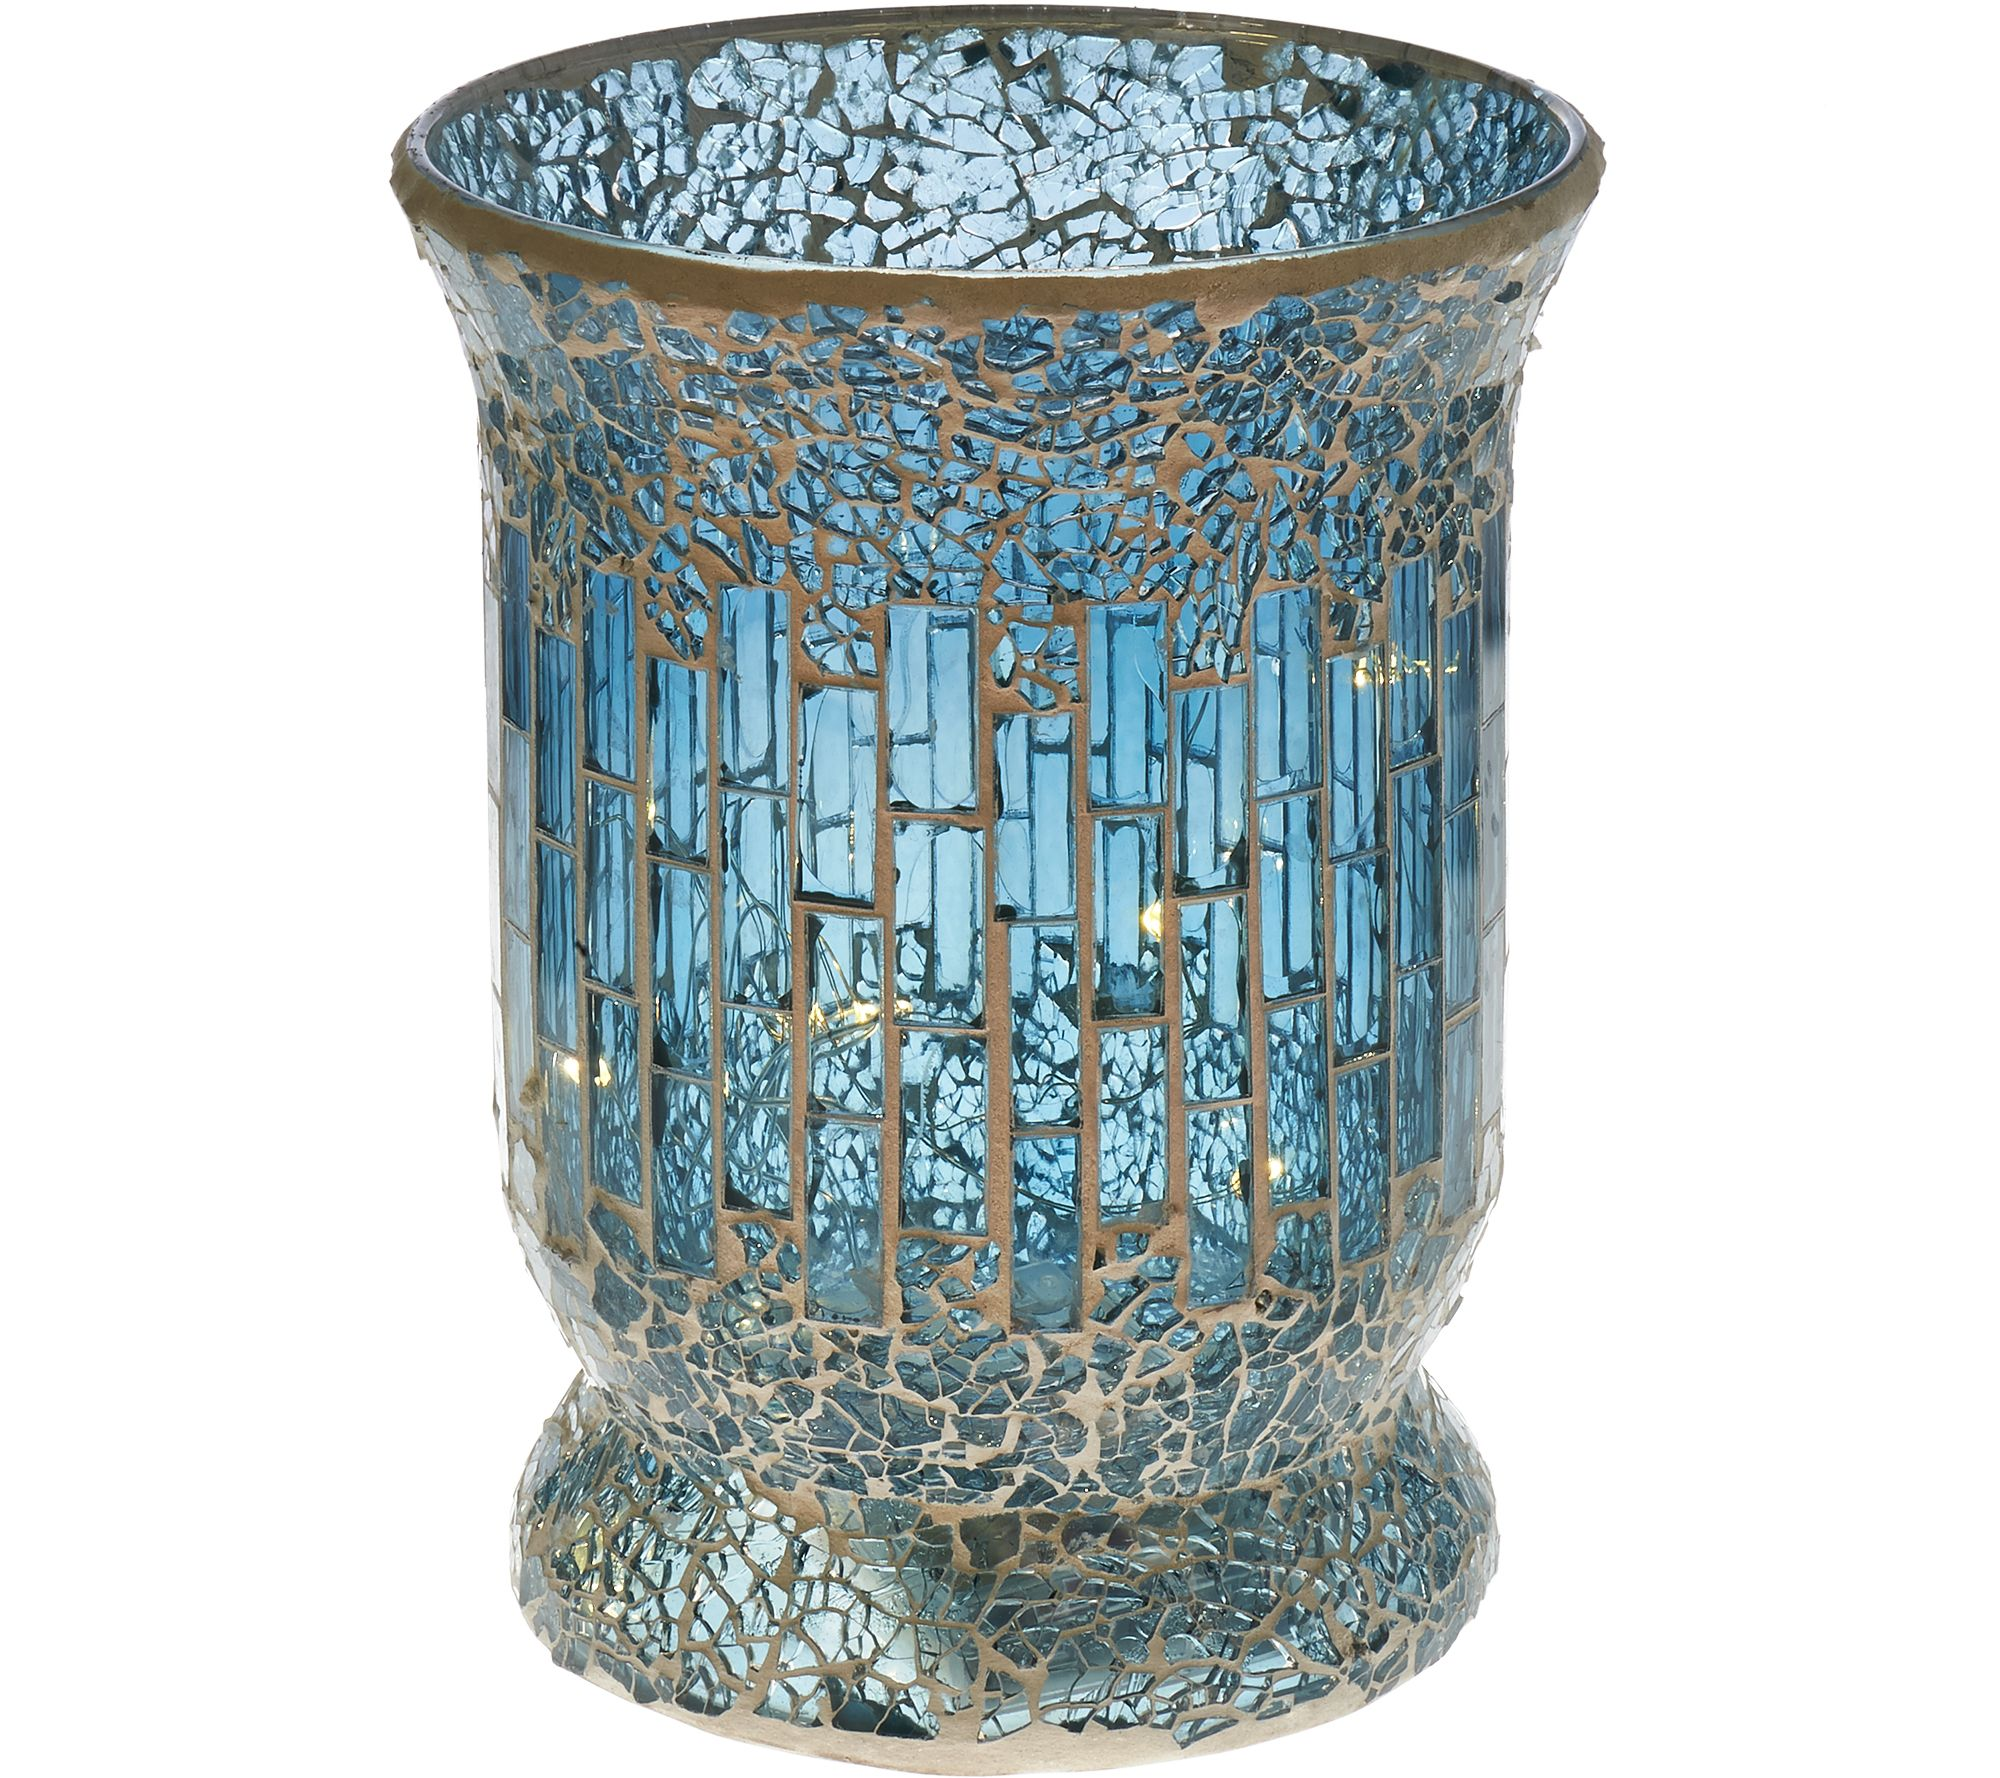 Valerie parr hill vases decorative accents for the home 8 glass mosaic tiled vase with micro lights by valerie h208958 reviewsmspy